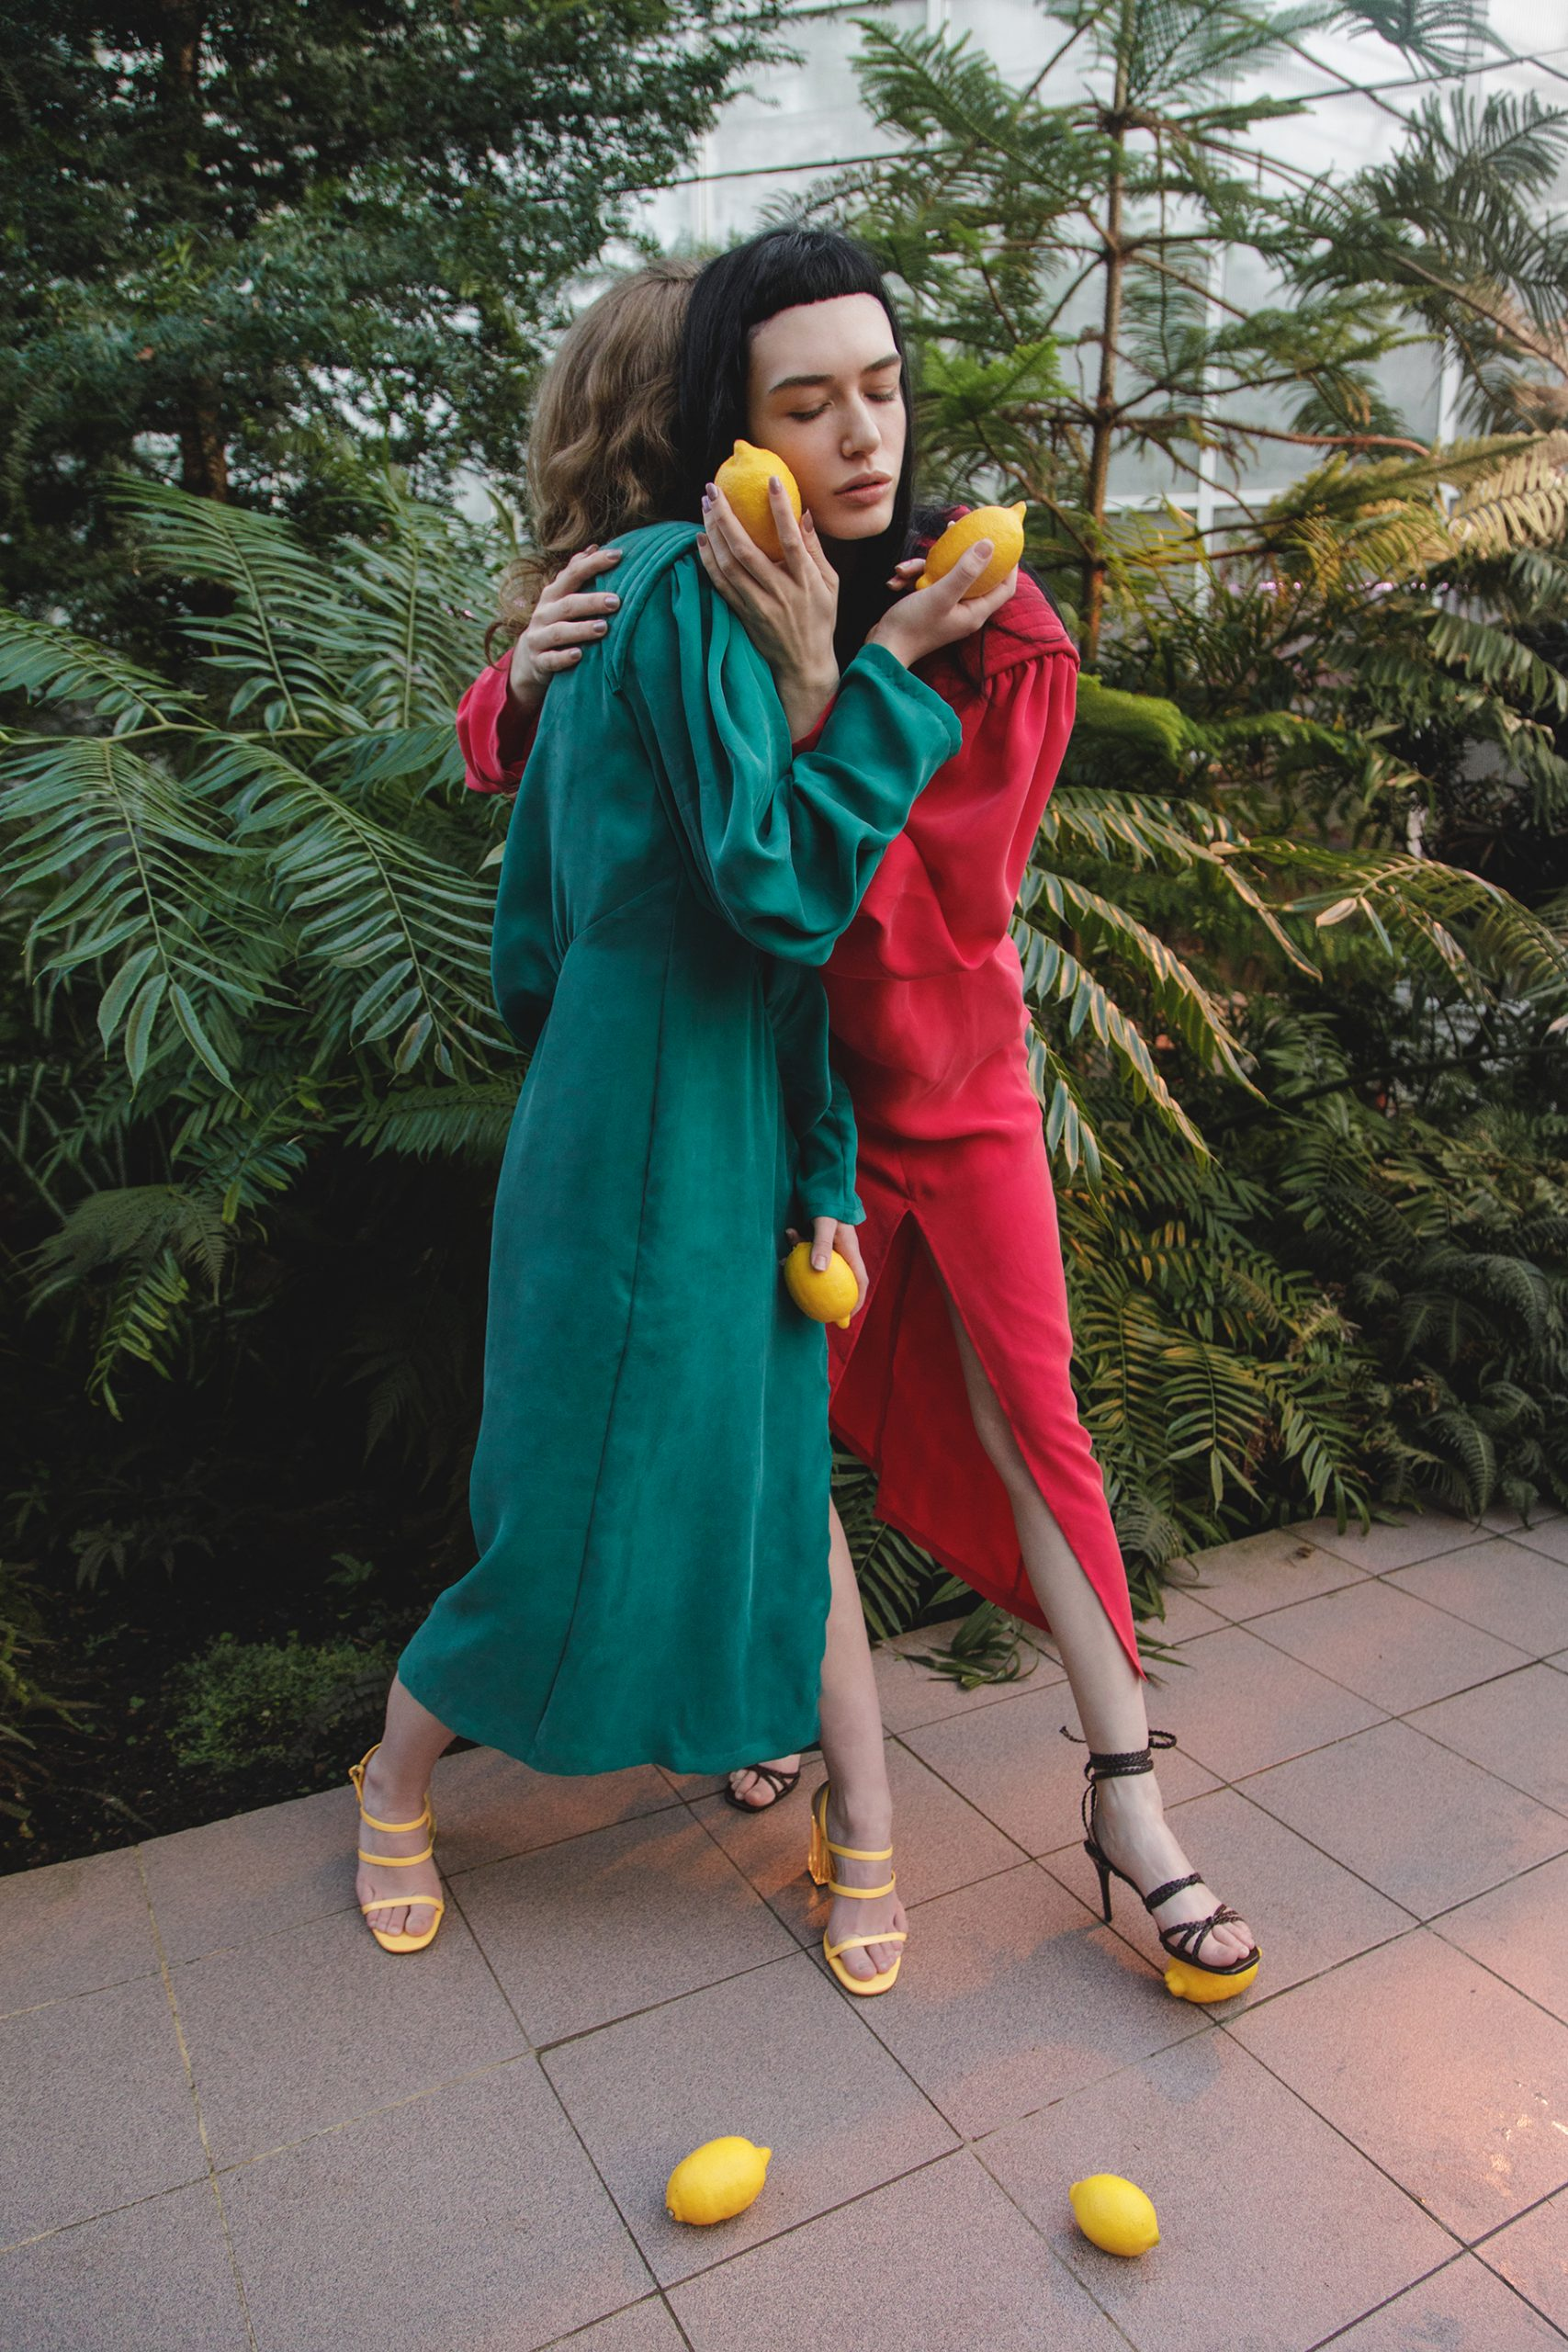 Yana Besfamilnaya Fall 2020 Fashion Collection Photos & Film from Russia Fashion Week in Moscow